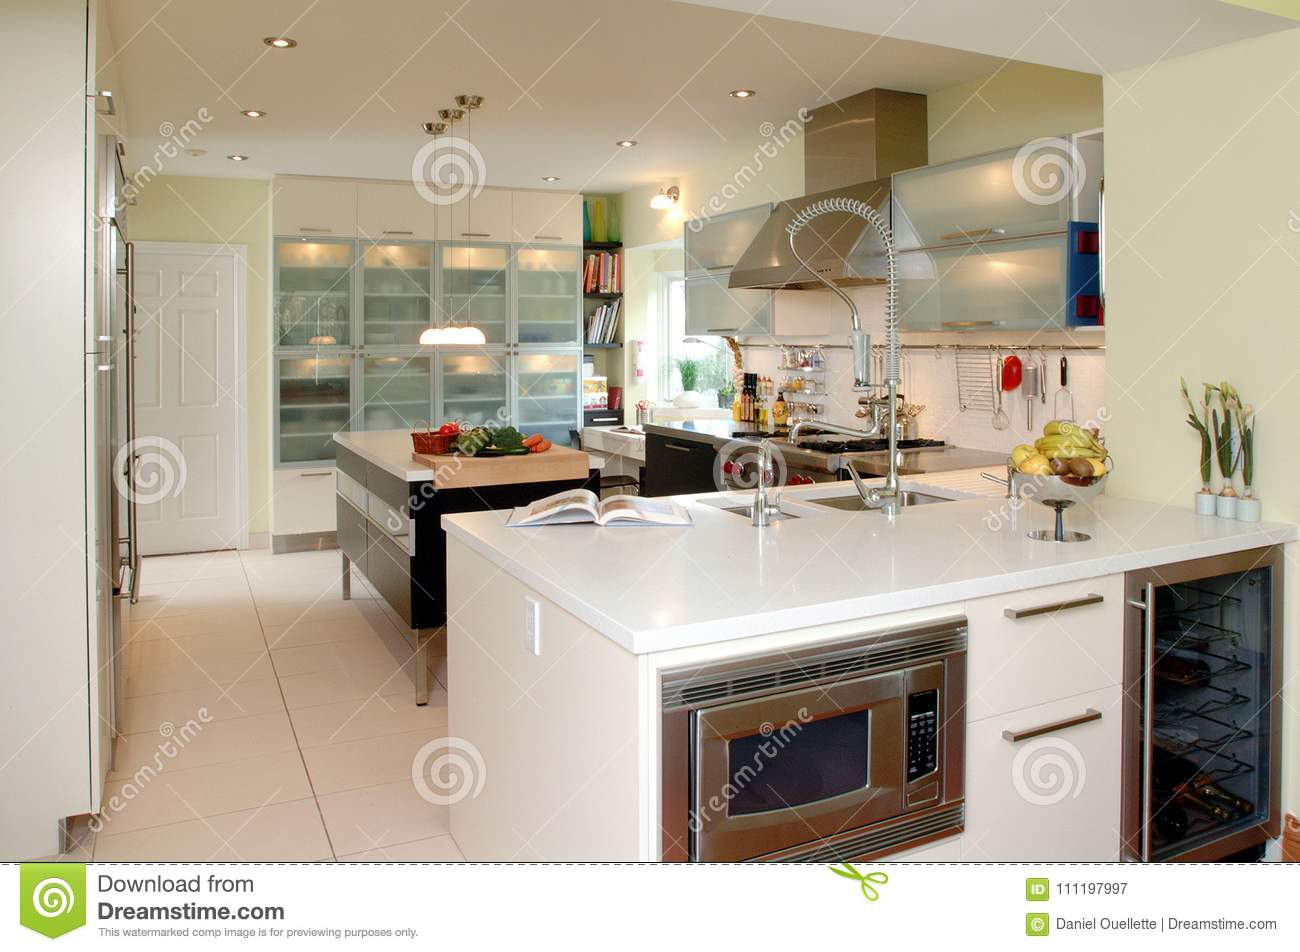 Modern Kitchen With White Counter Top Stock Image - Image of ...